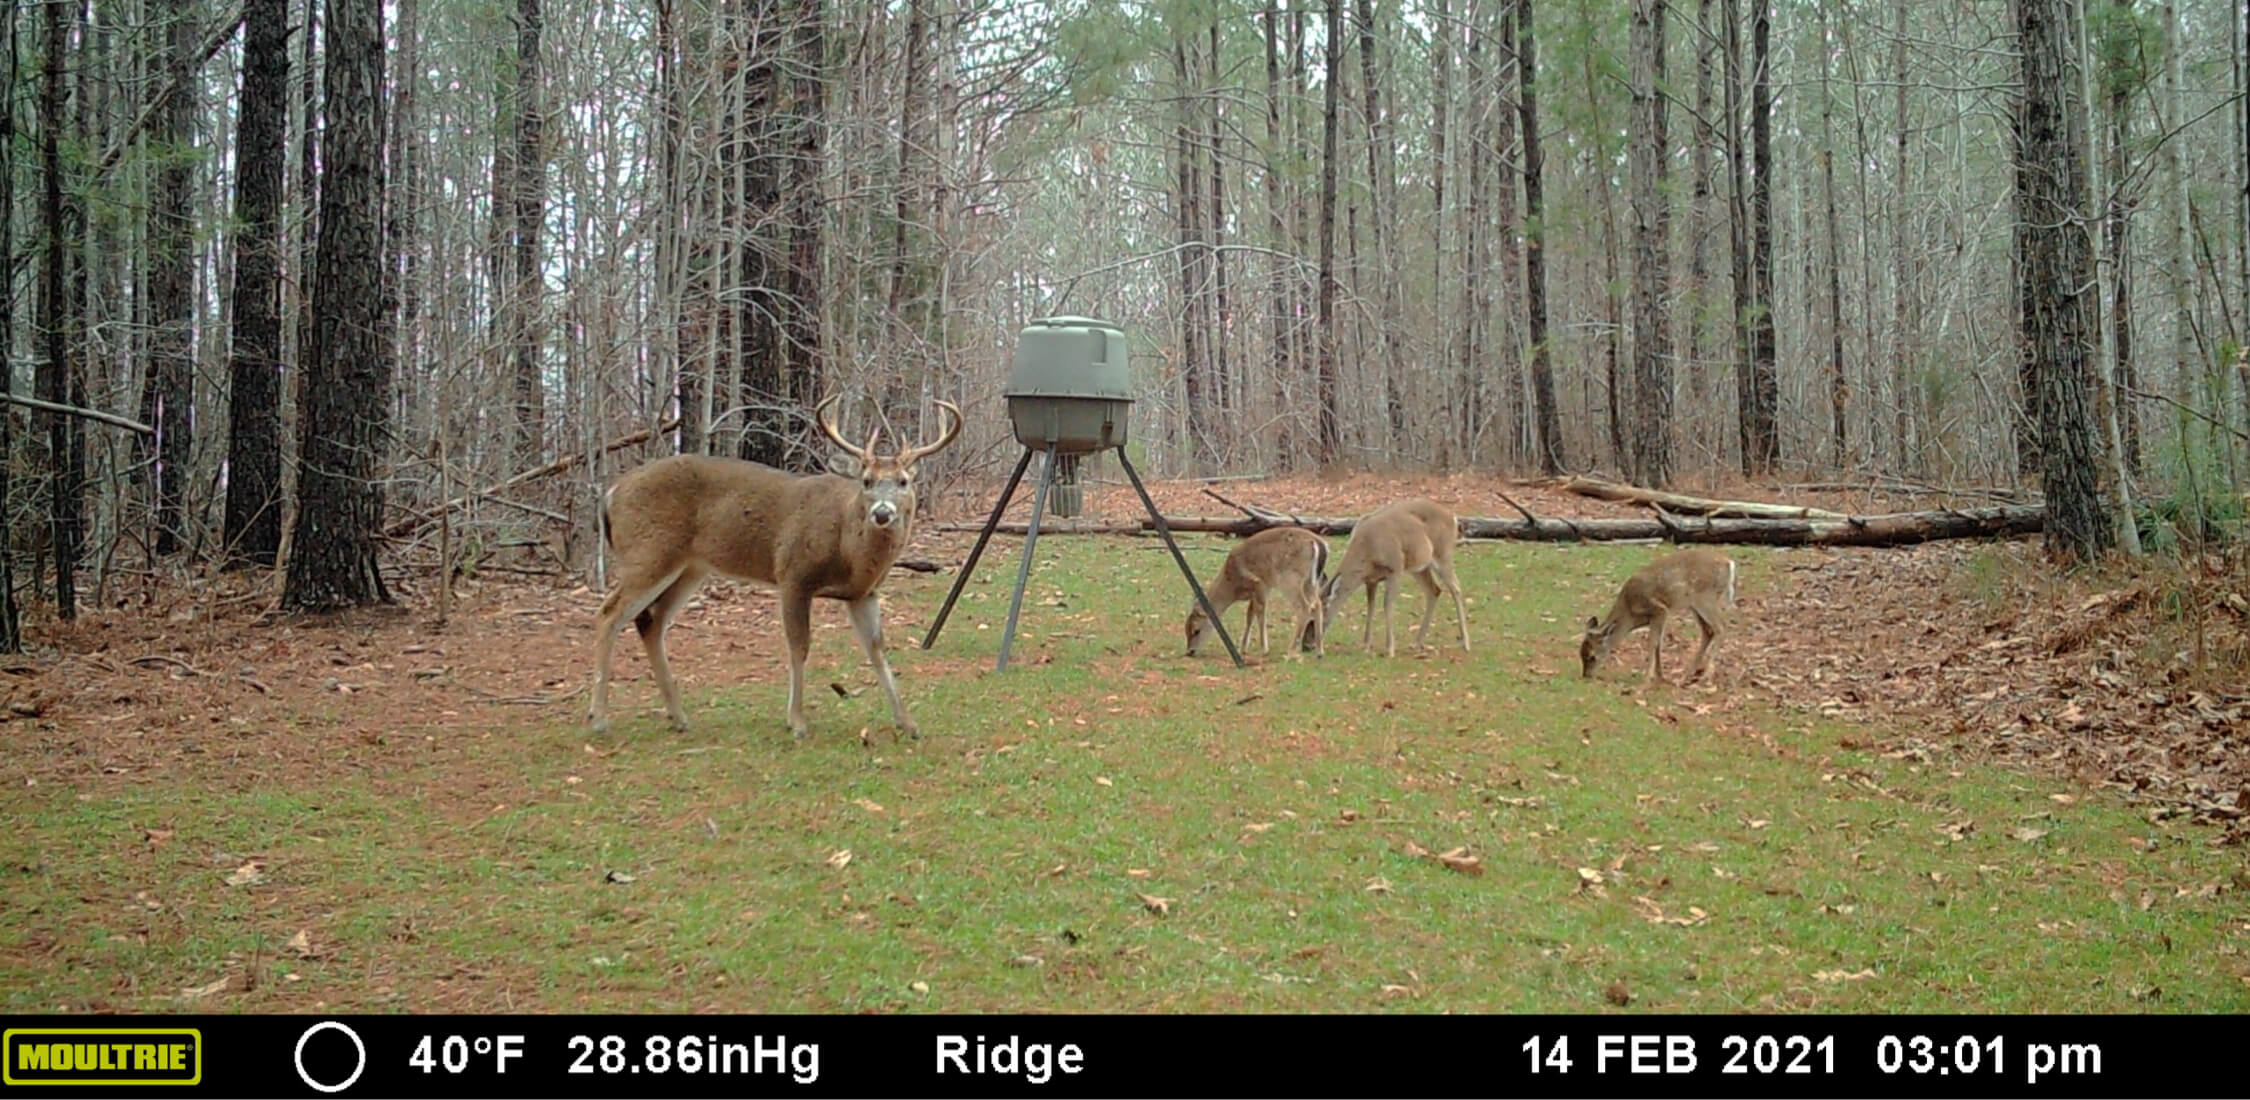 Image of deer near a feeder taken from Moultrie Mobile cellular trail camera